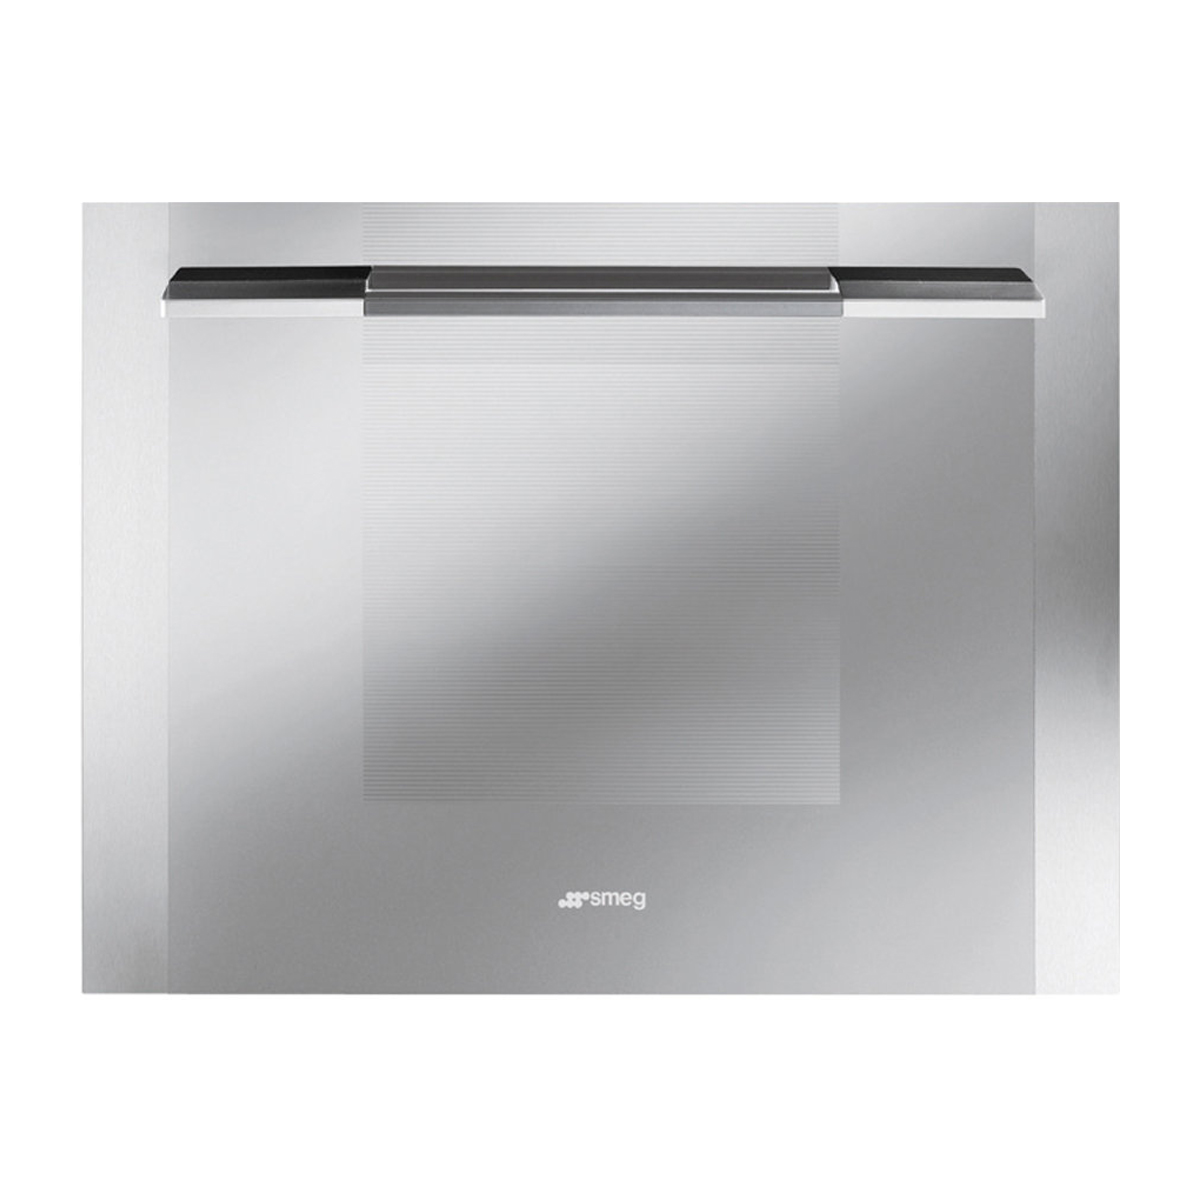 Smeg SAP1128 597mm Electric Built-In Pyrolytic Oven 49192